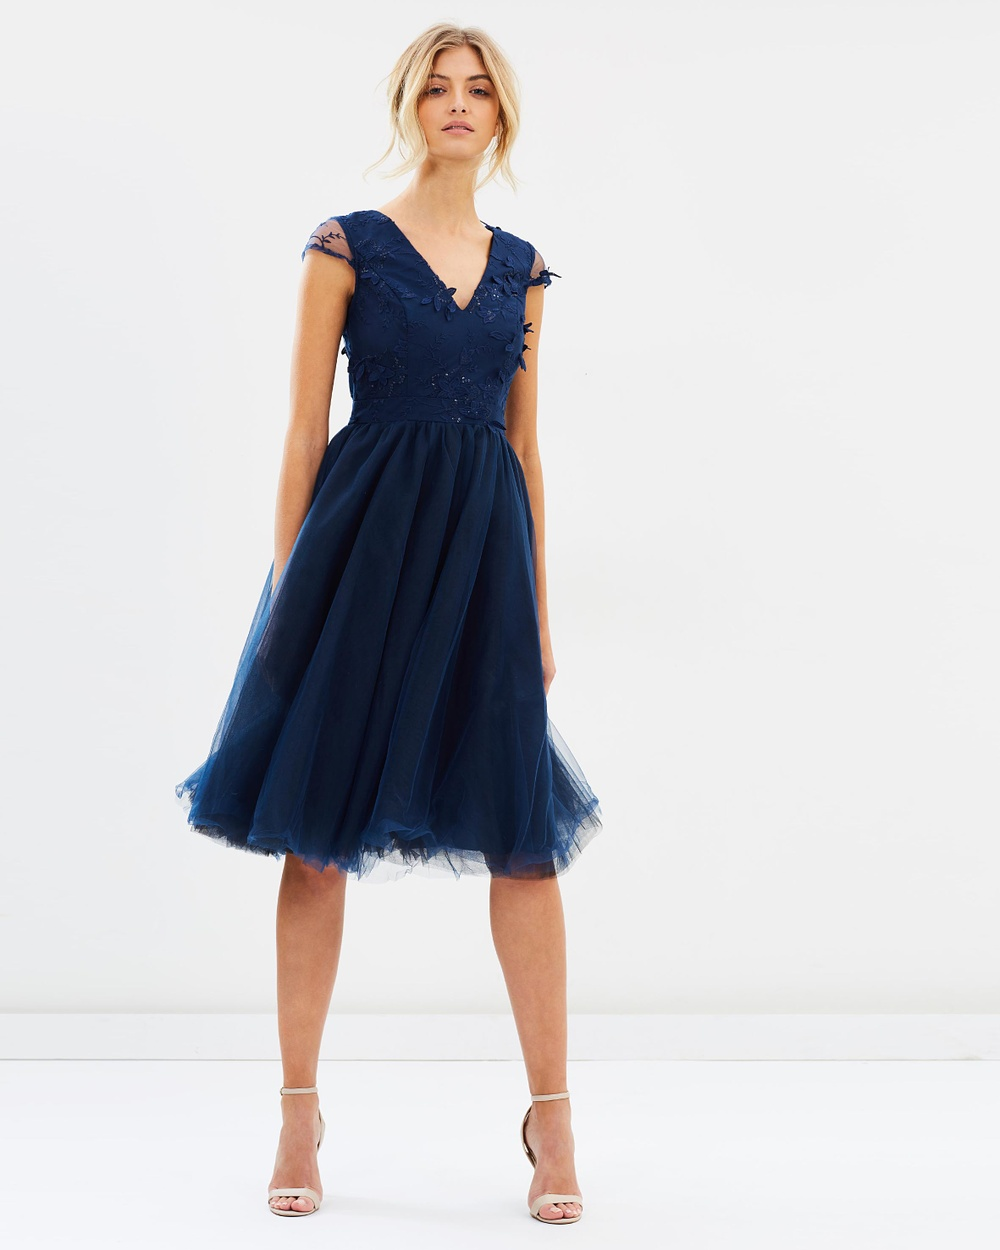 Photo of Chi Chi London Chi Chi London Cosette Dress Bridesmaid Dresses Navy Cosette Dress - Exuding a delicate elegance and femininity, the Cosette Dress from Chi Chi London is full of soft curves and dreamy floral accents. The dark navy dress features a classic v-neckline and back, and a full midi skirt that billows down to just below the knees. Our model is wearing a size UK 8 dress. She usually takes a standard AU 8/Small, is 5'11